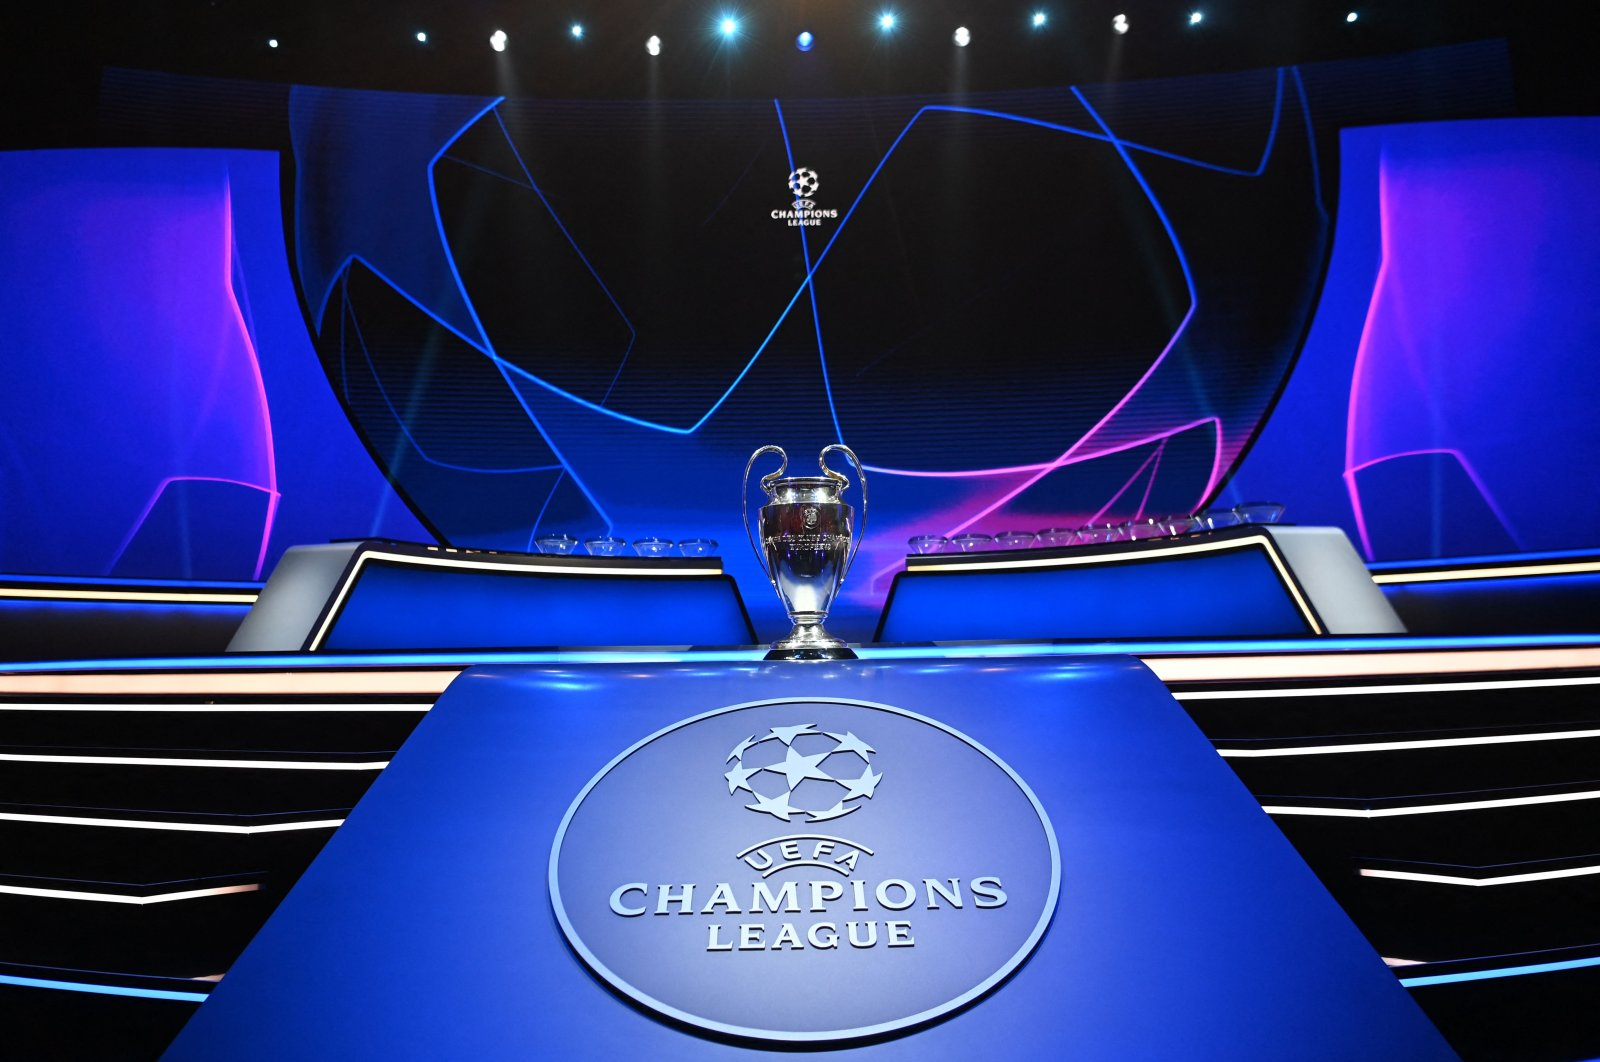 The UEFA Champions League trophy prior to the draw for the 2021/2022 European football tournament in Istanbul, Turkey, Aug. 26, 2021. (AFP Photo)